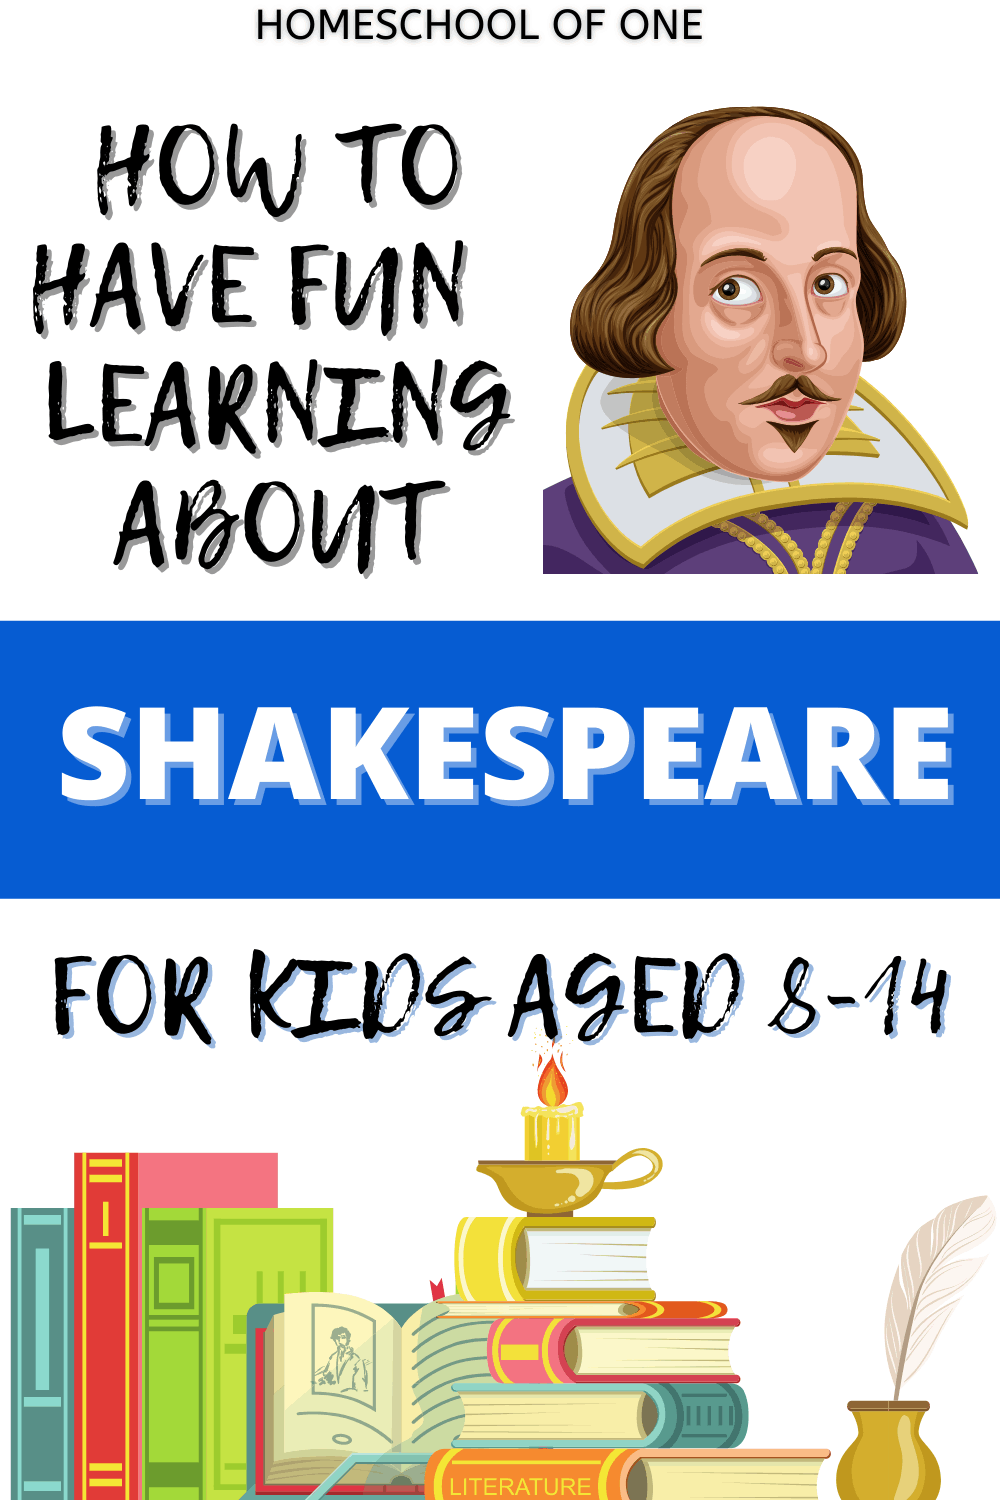 Have fun learning about Shakespeare with books, games and online courses #shakespeare